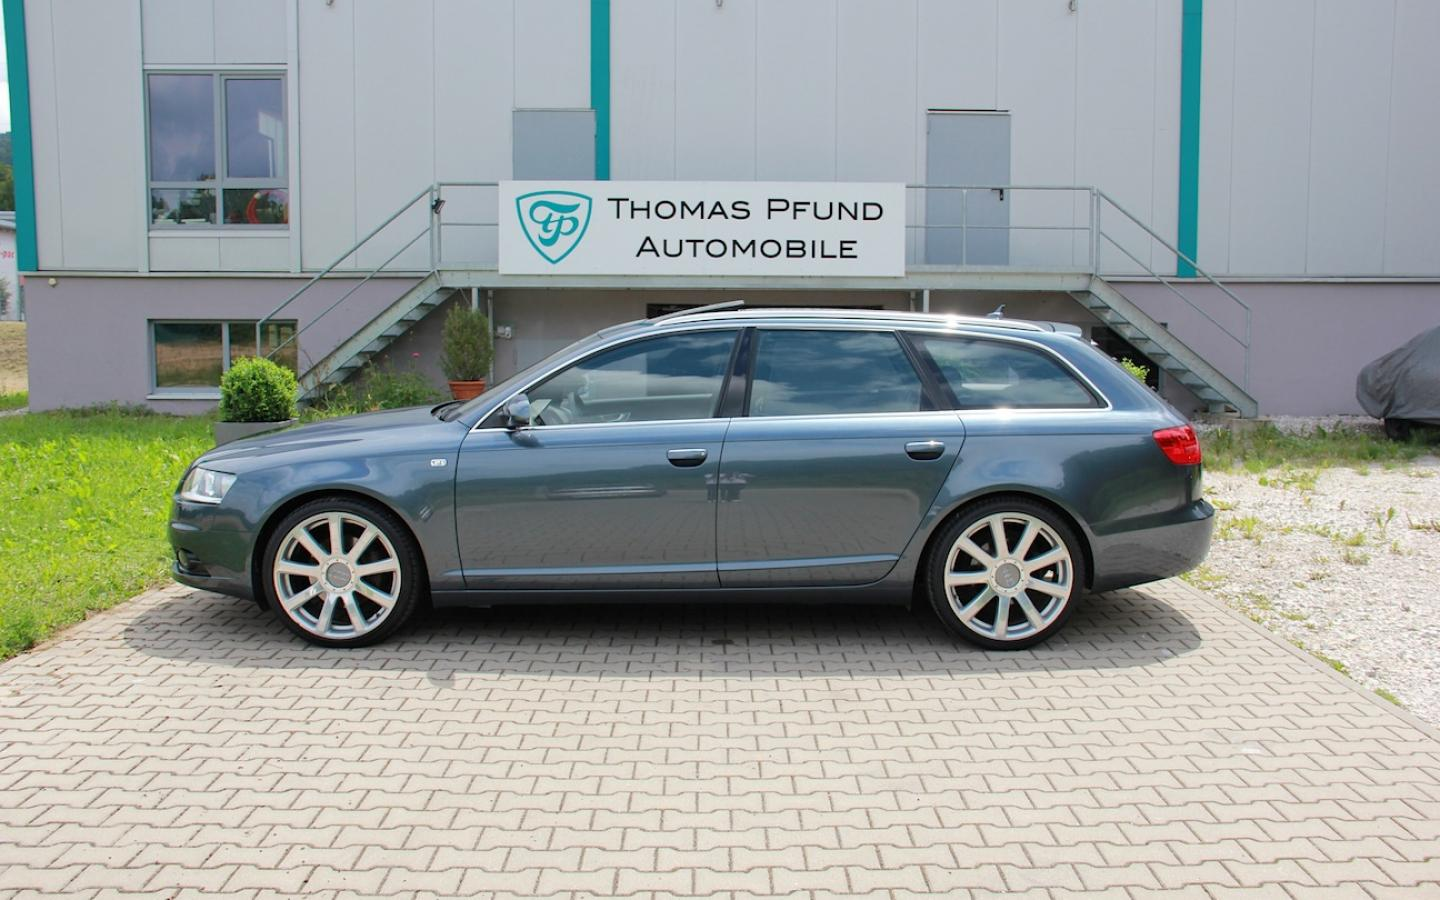 audi a6 avant quattro thomas pfund automobile. Black Bedroom Furniture Sets. Home Design Ideas